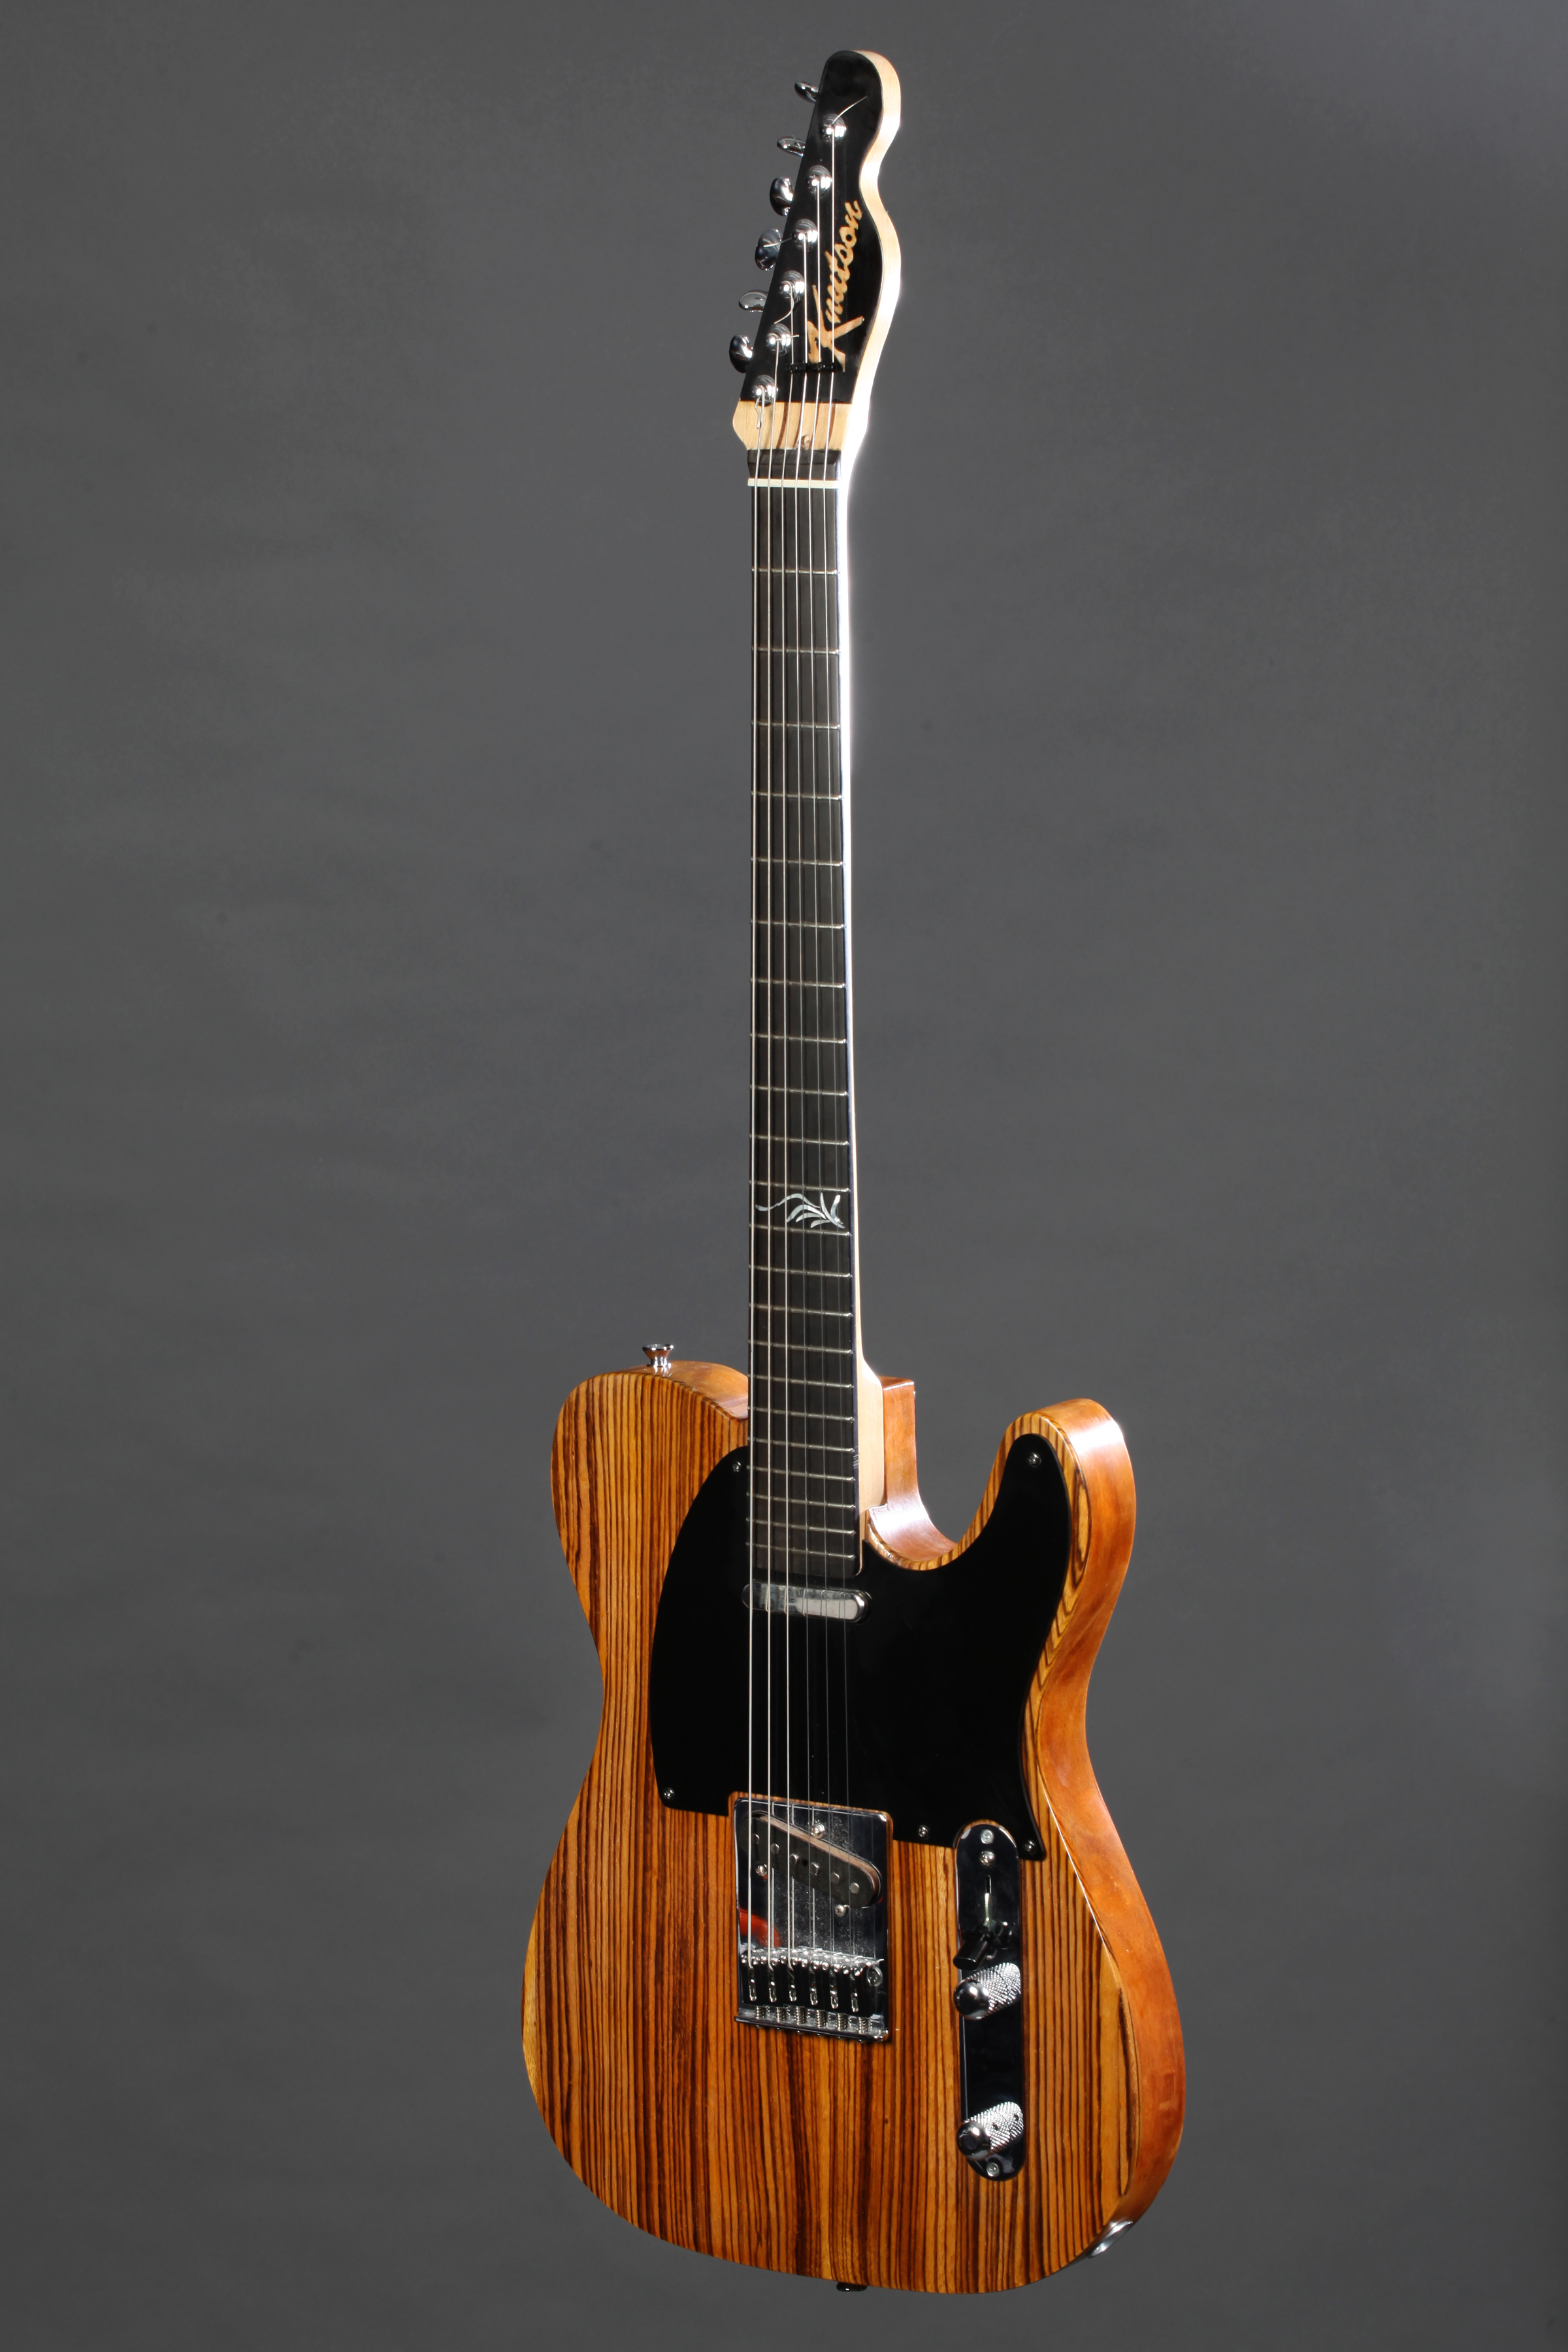 Chambered Mahogany Tele with Zebrawood top - Fralin Blues Specials pickups.